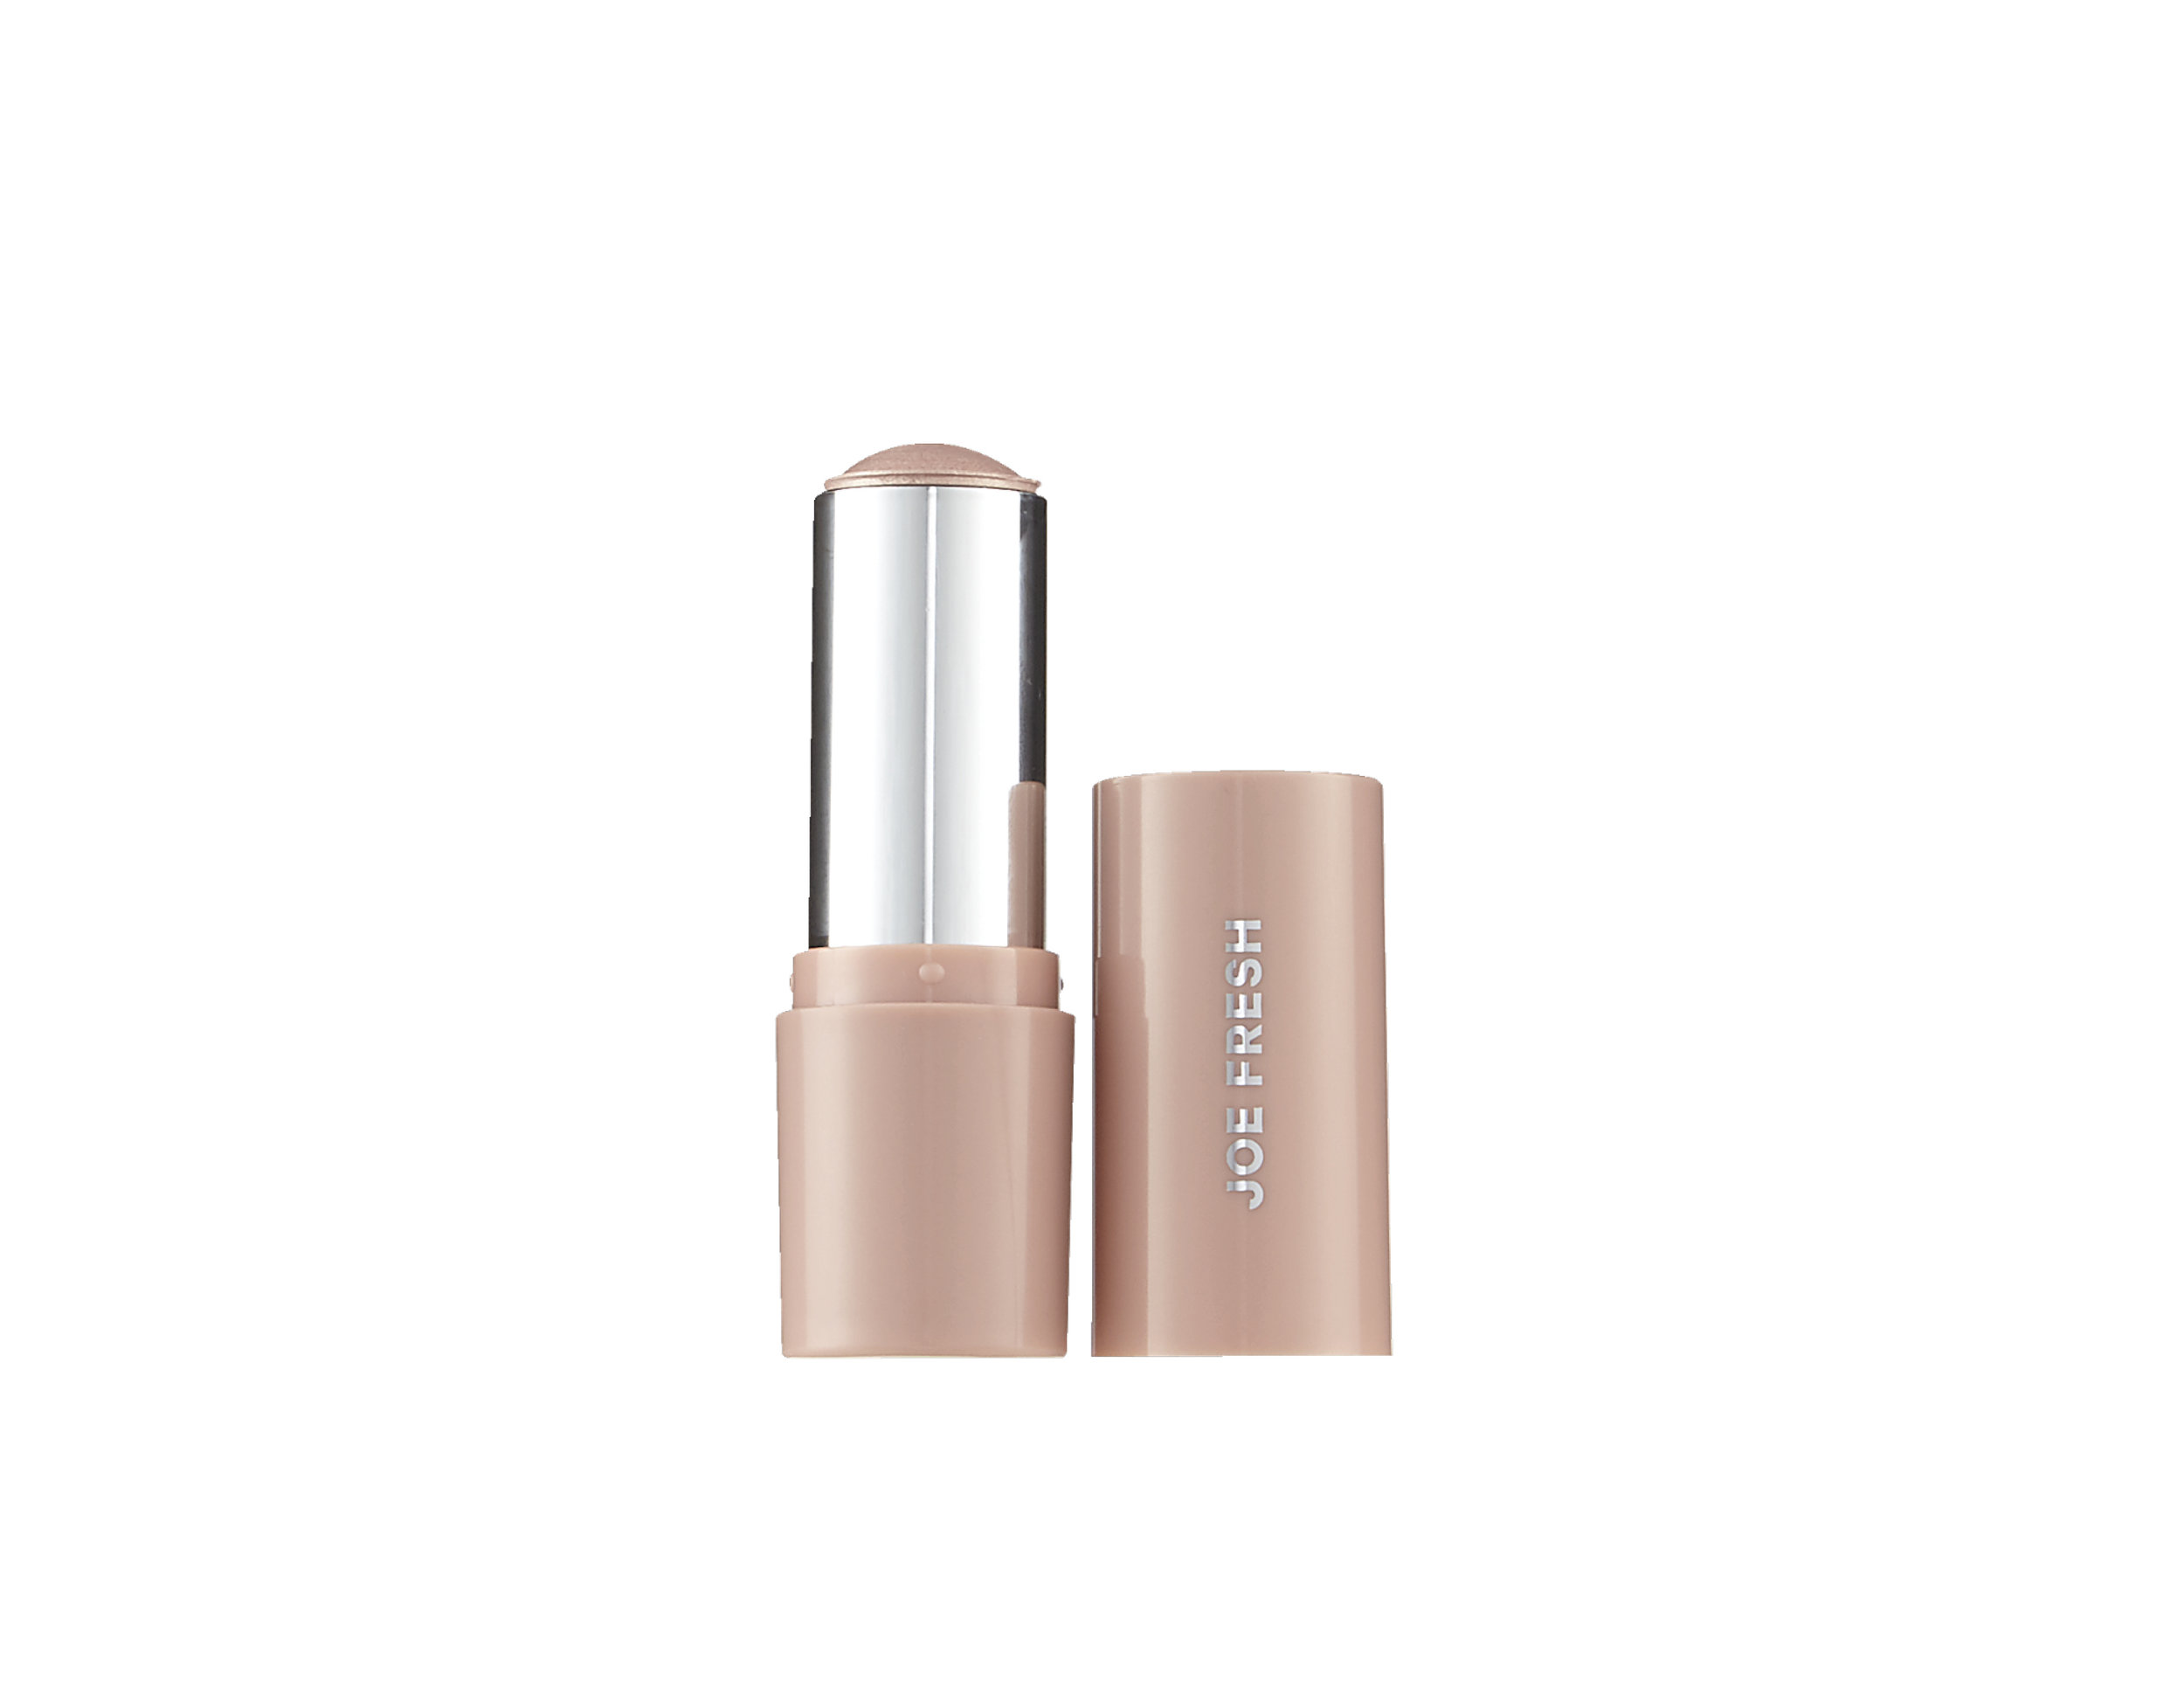 Joe Fresh Highlighter Stick - Pink Pearl, $10. Available at Shoppers Drug Mart.